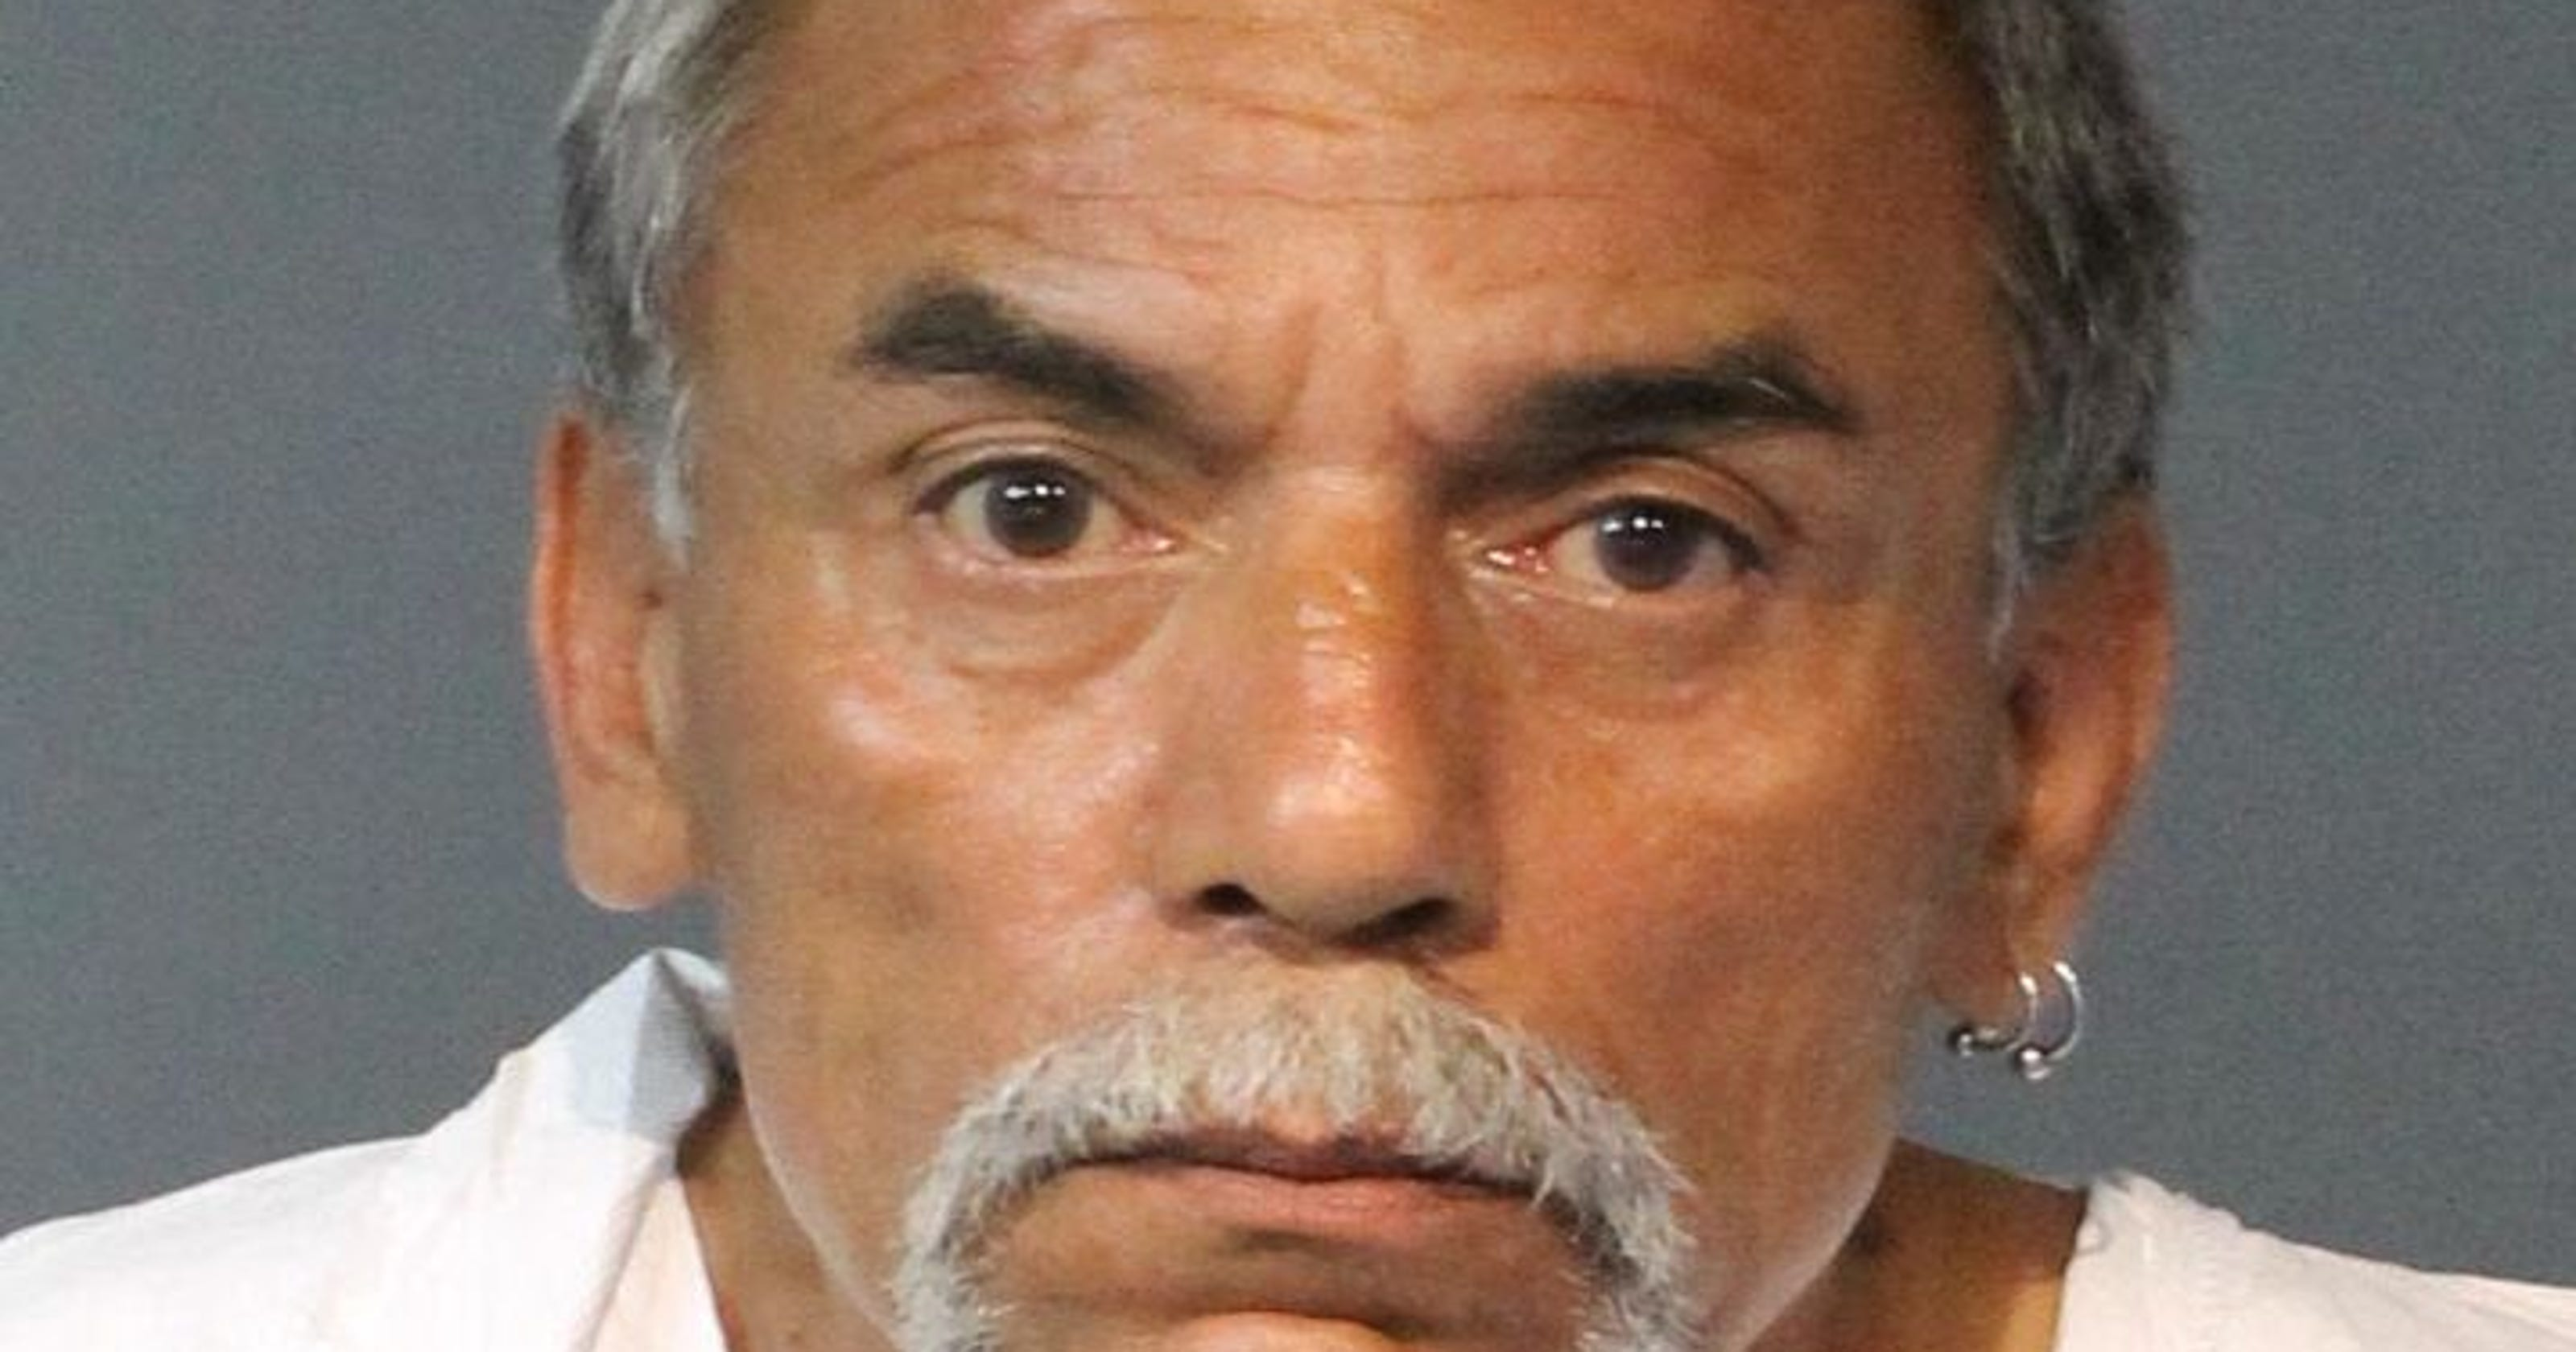 Man faces murder charge for death of 56-year-old man in Reno